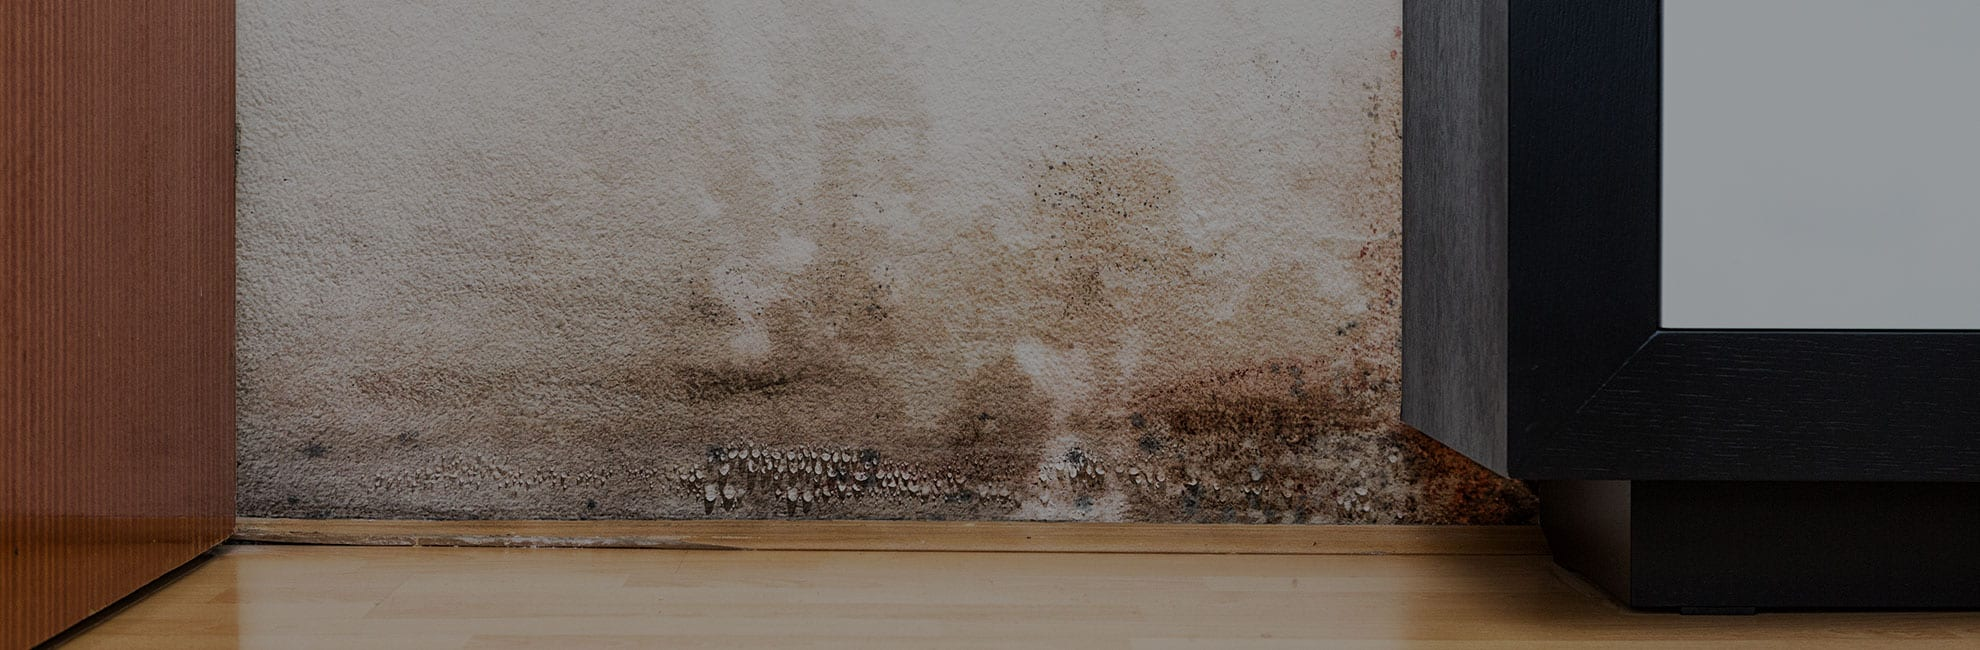 What Is Dry And Wet Rot?